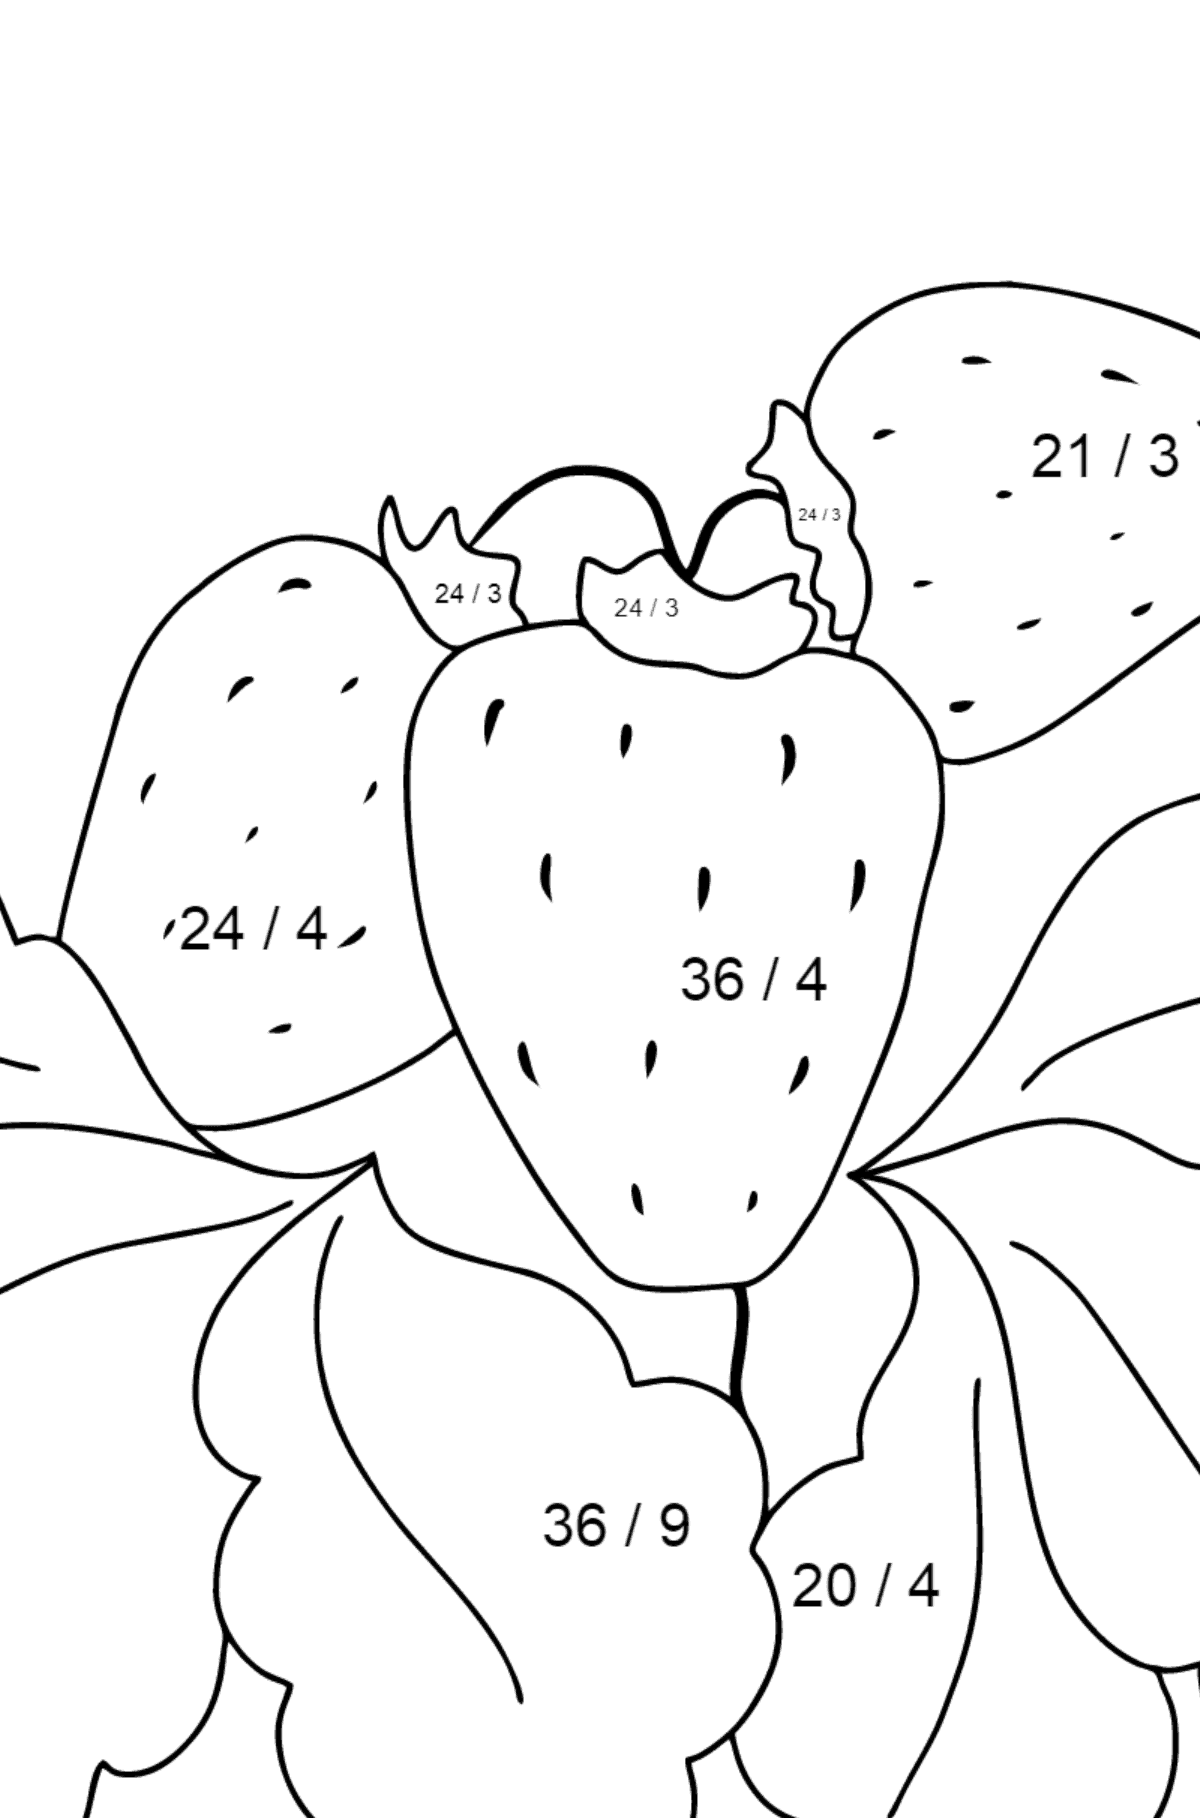 Coloring Page - Summer and Strawberries - Math Coloring - Division for Children